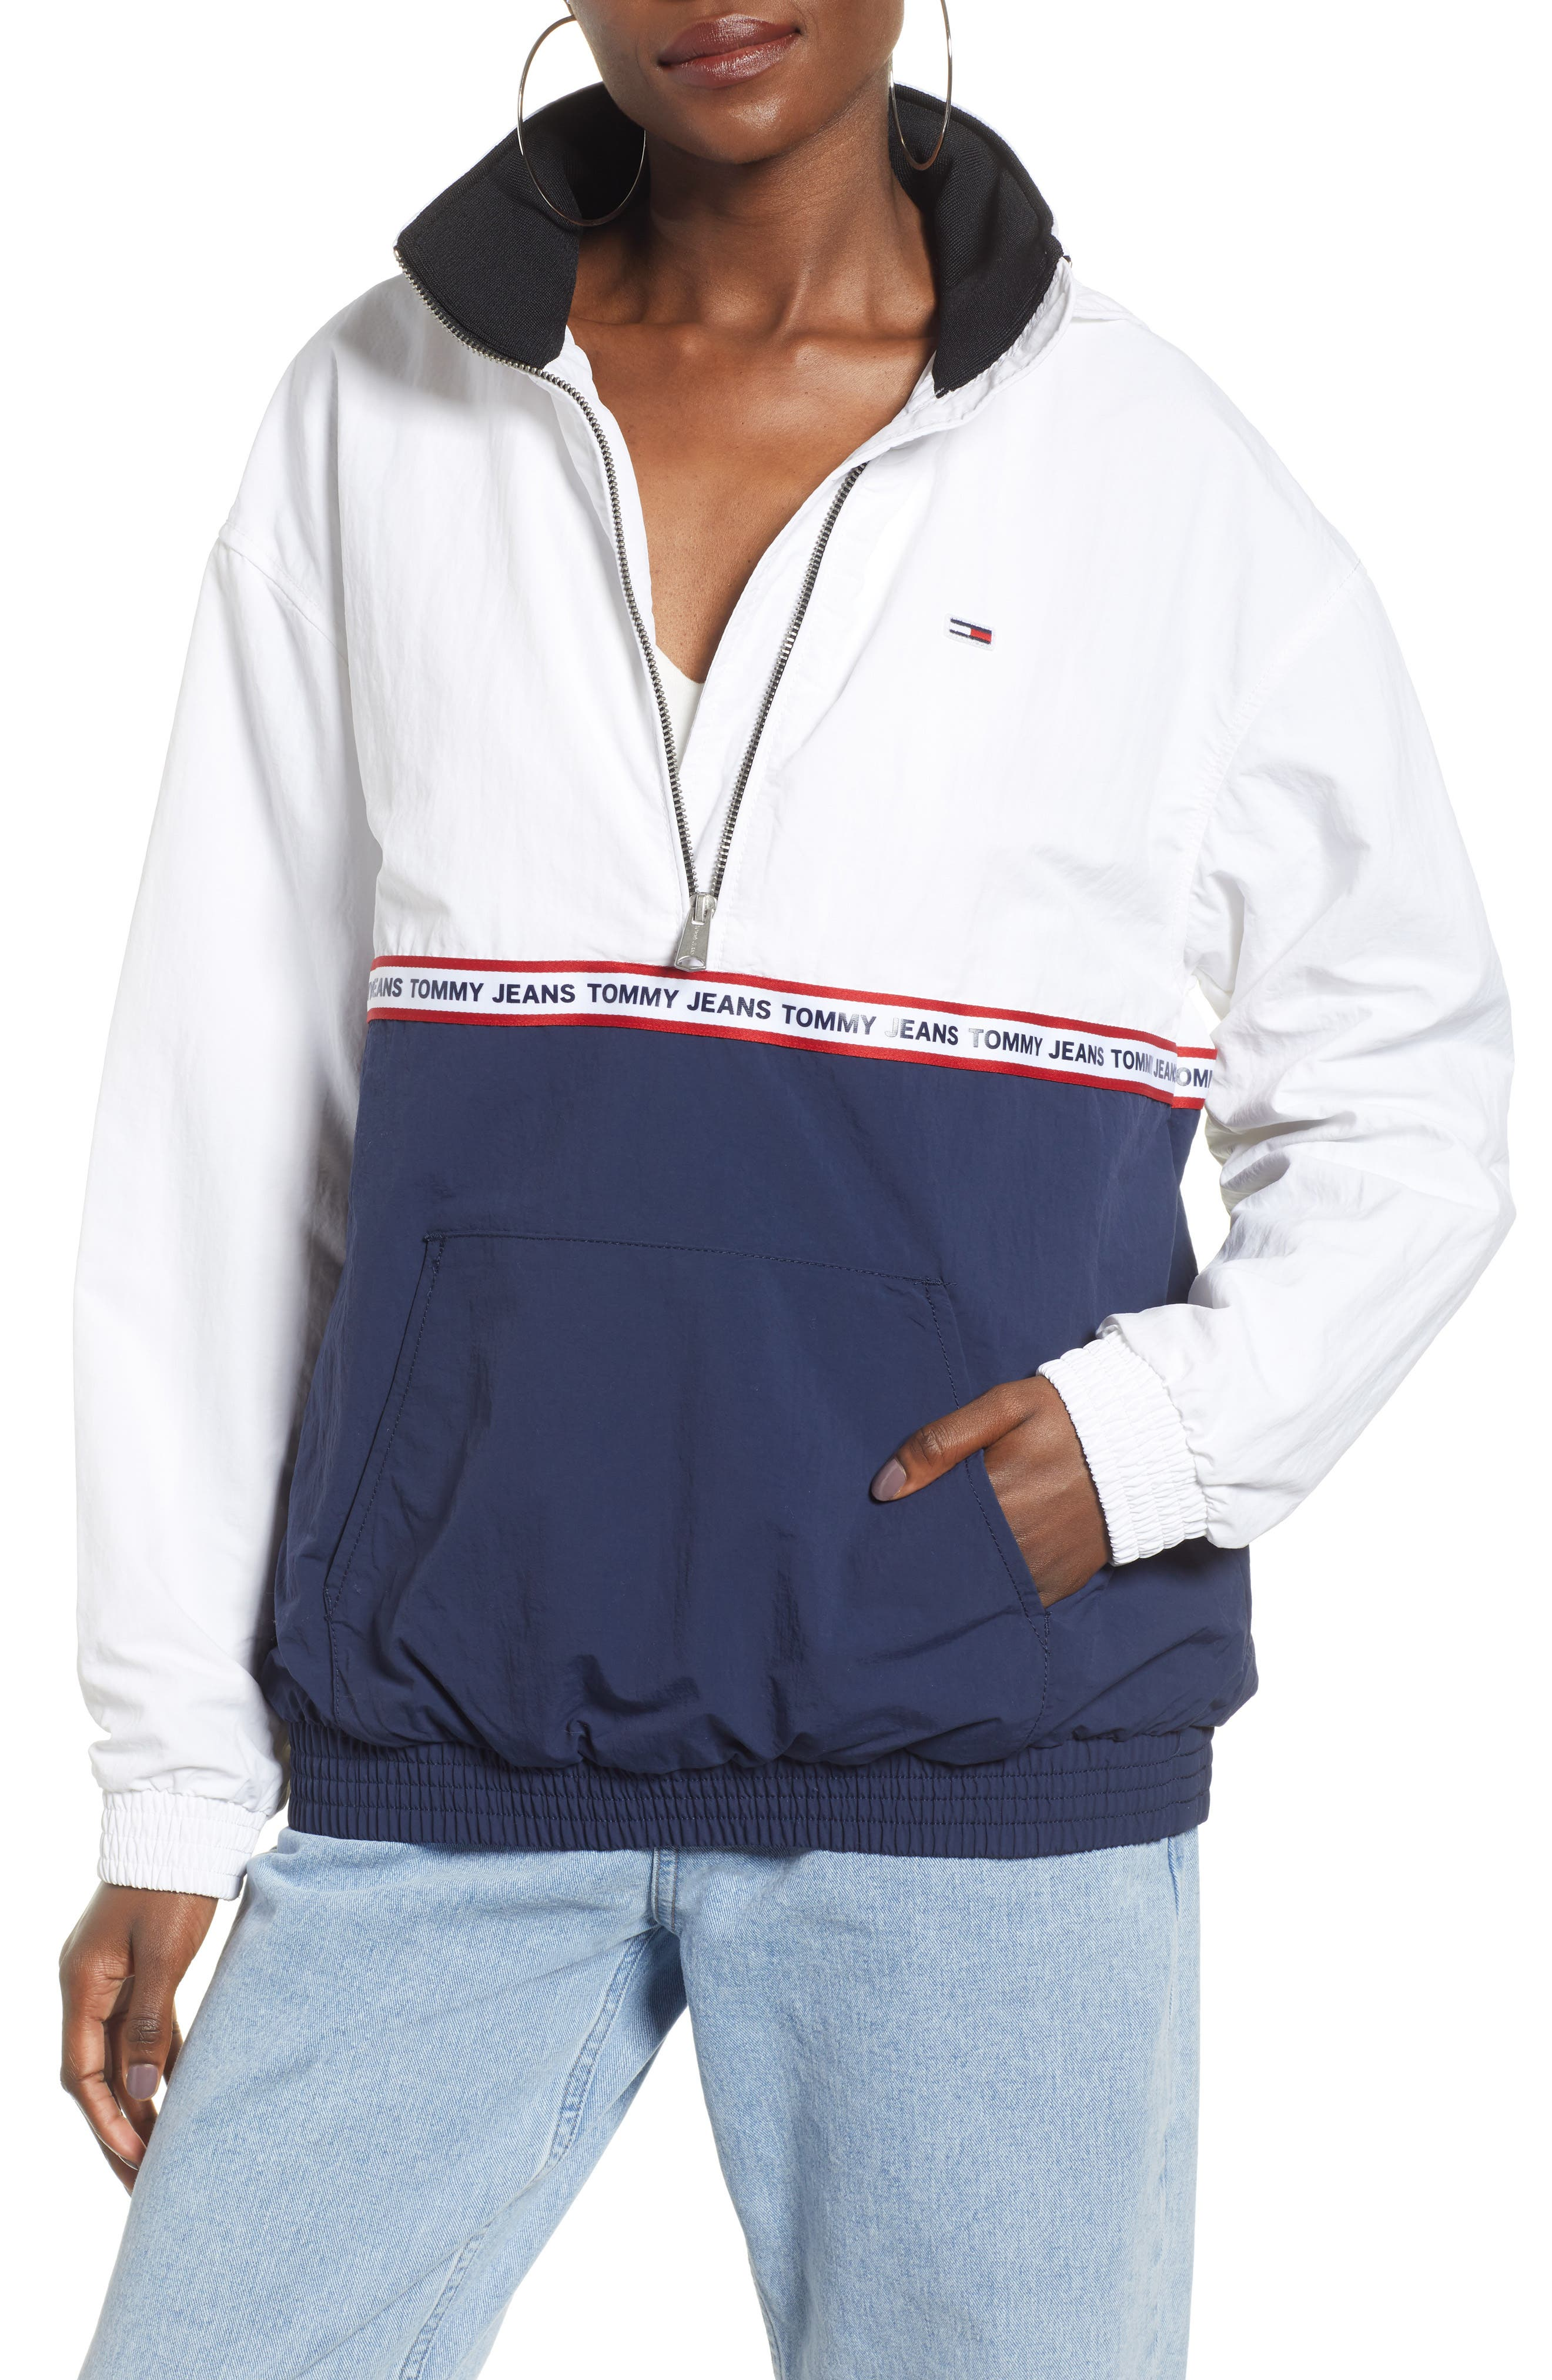 TOMMY JEANS TJW Logo Tape Pullover, Main, color, 400